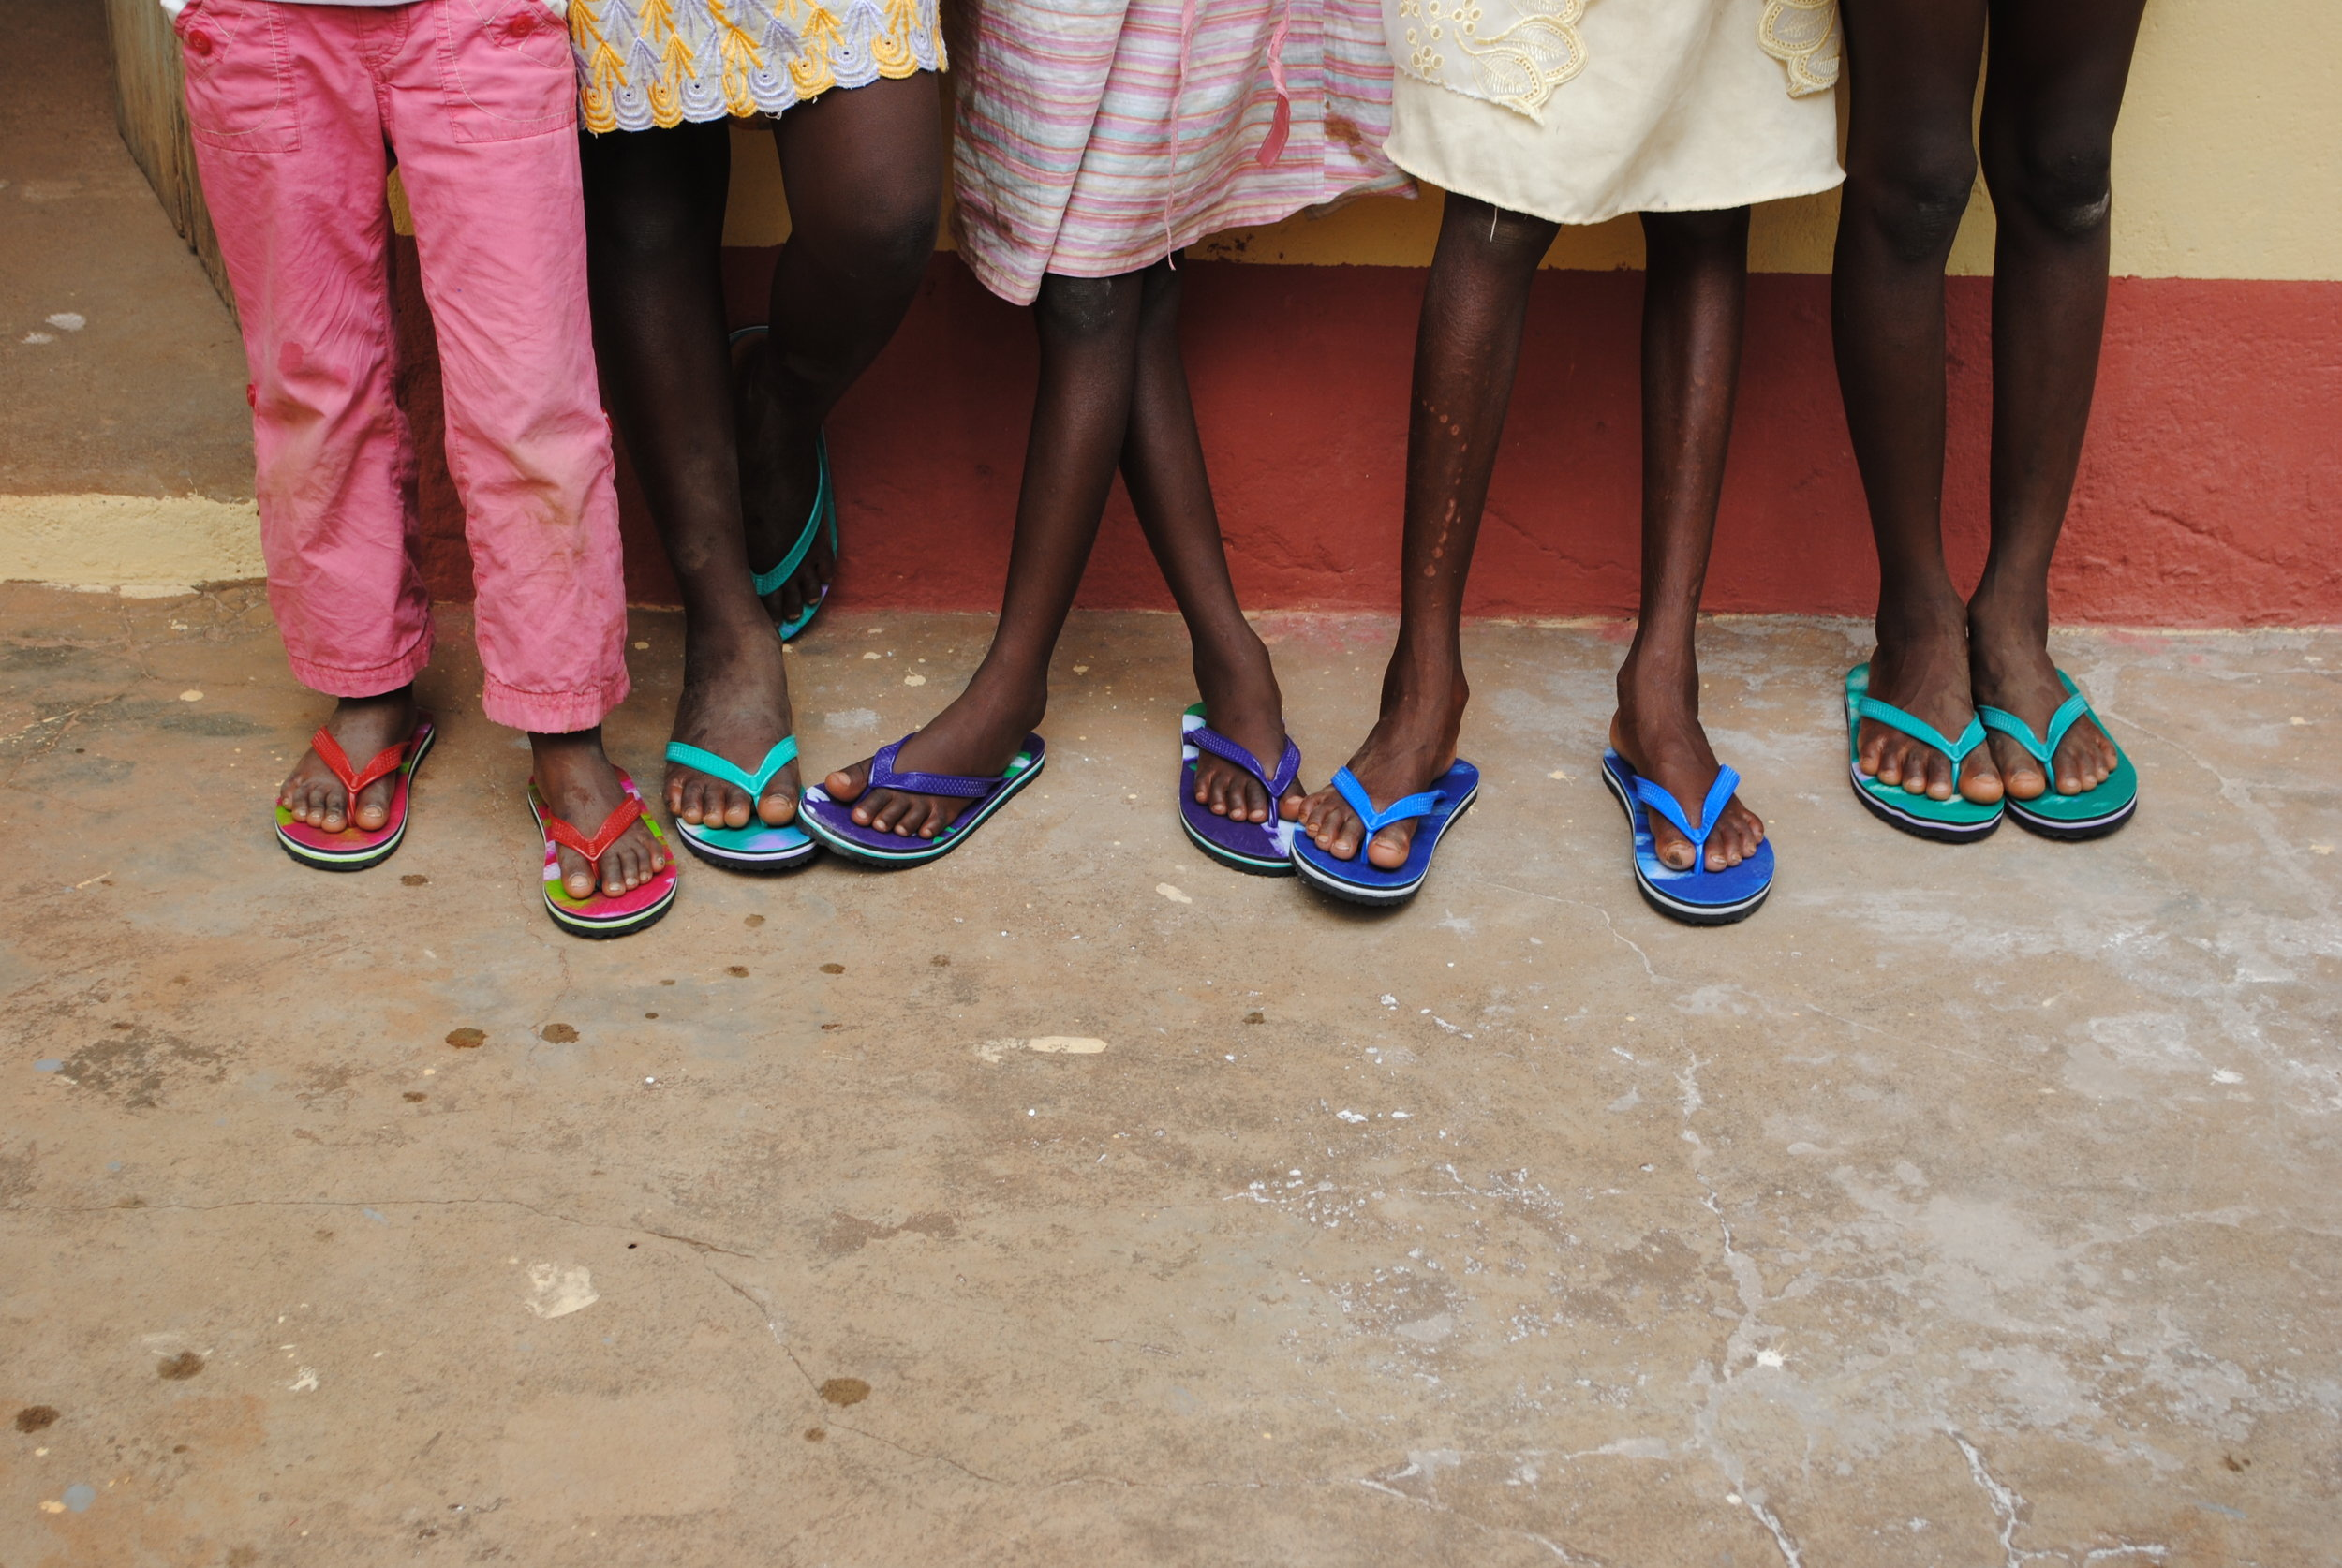 You can probably tell that the few clothes they had were ill-fitting and in bad shape. One of the first things Celestine did was bring over new shoes and have the girls fitted for Sunday dresses by a seamstress.